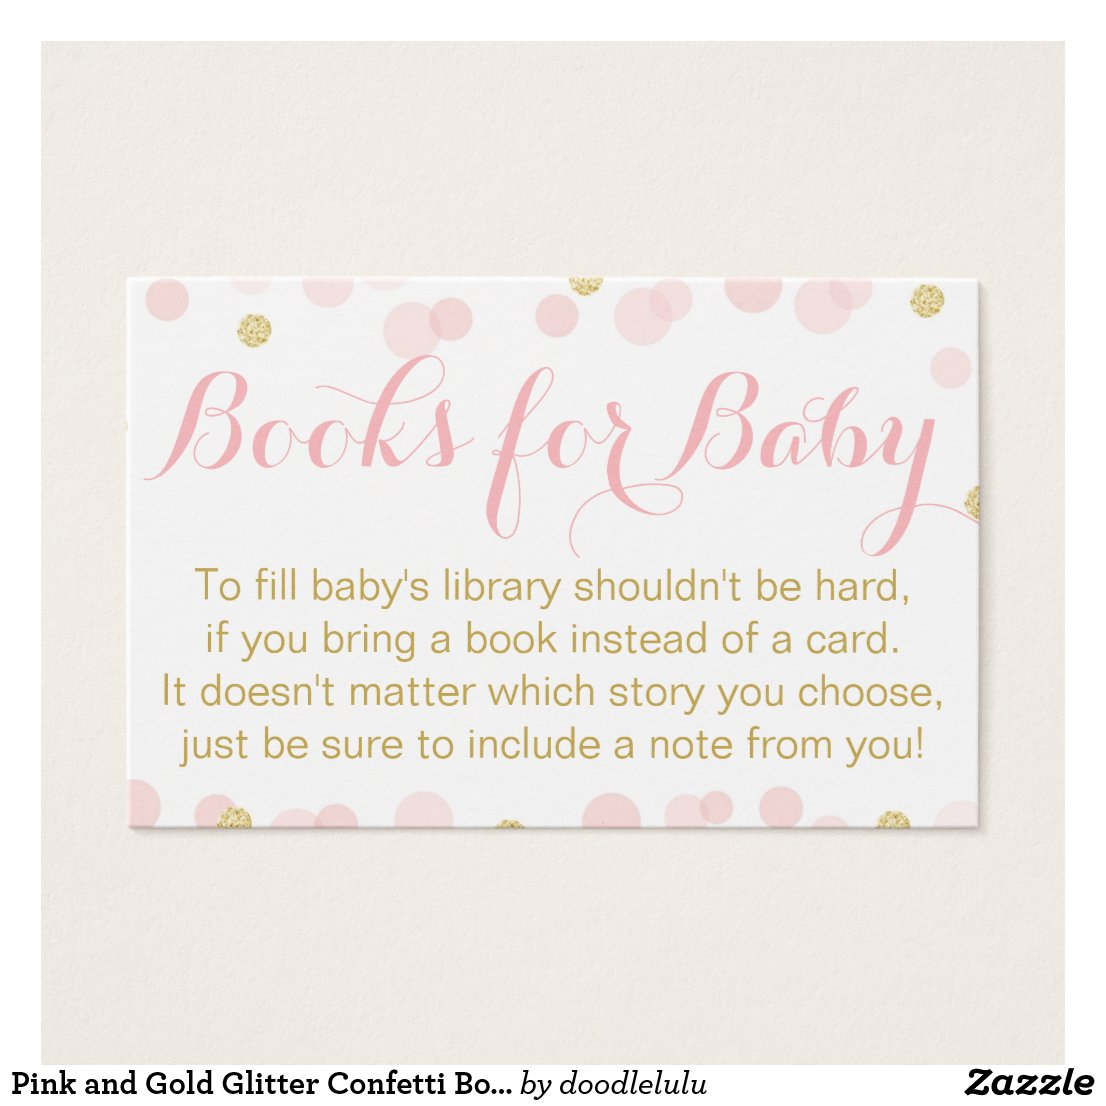 Pink and Gold Glitter Confetti Books For Baby